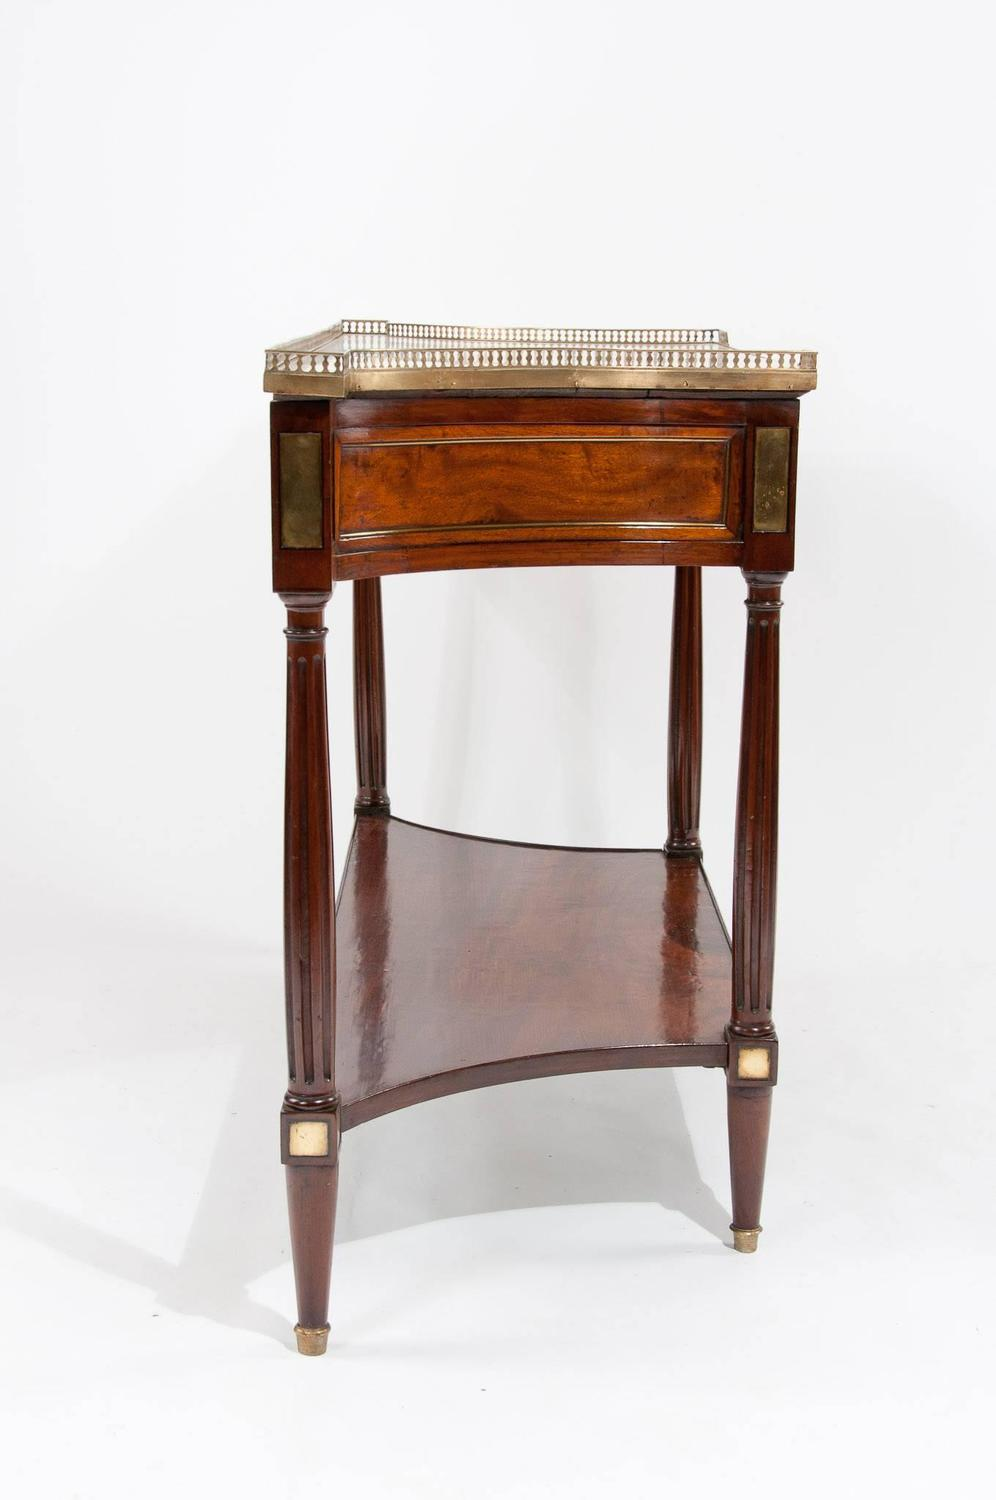 Very fine 18th century french console dessert at 1stdibs for 18th century french cuisine